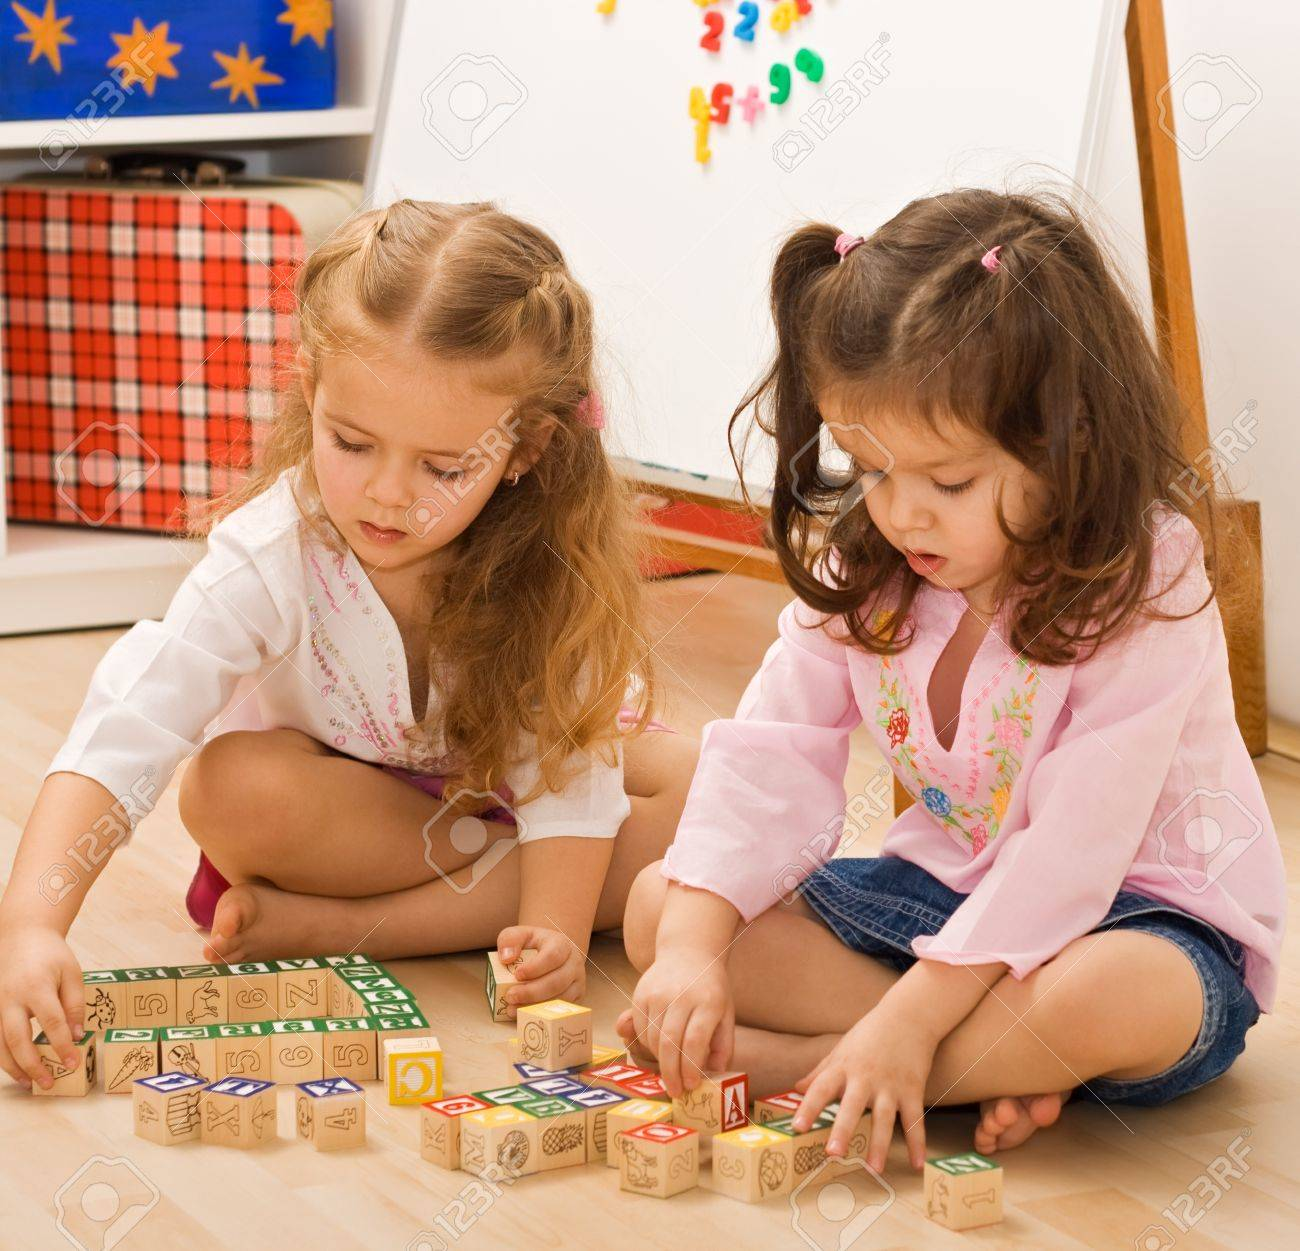 Little girls playing with blocks on the floor Stock Photo - 17218753